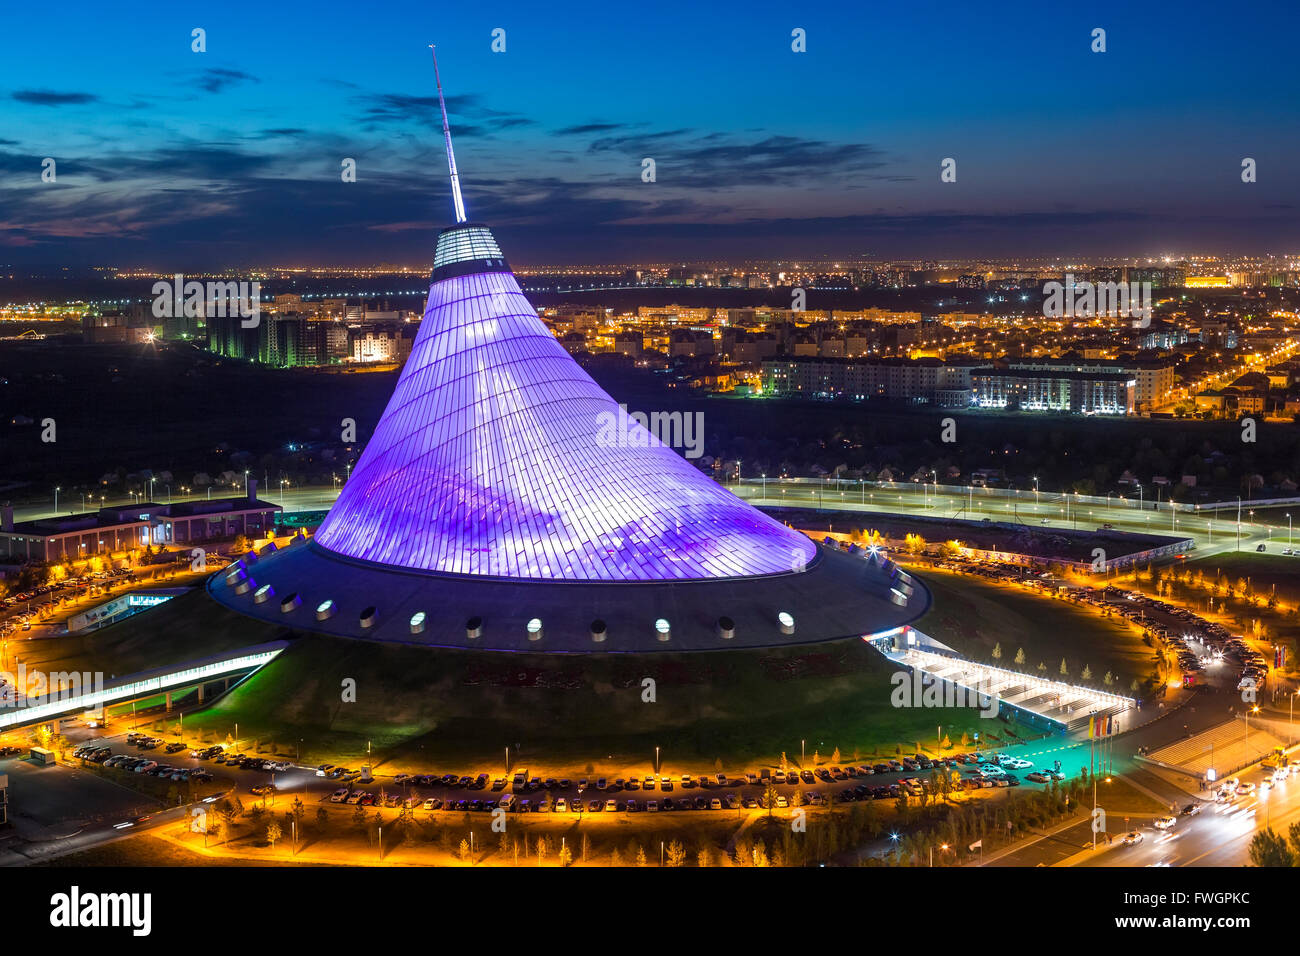 Nuit vue sur Khan Shatyr Entertainment Centre, Astana, Kazakhstan, en Asie centrale Photo Stock